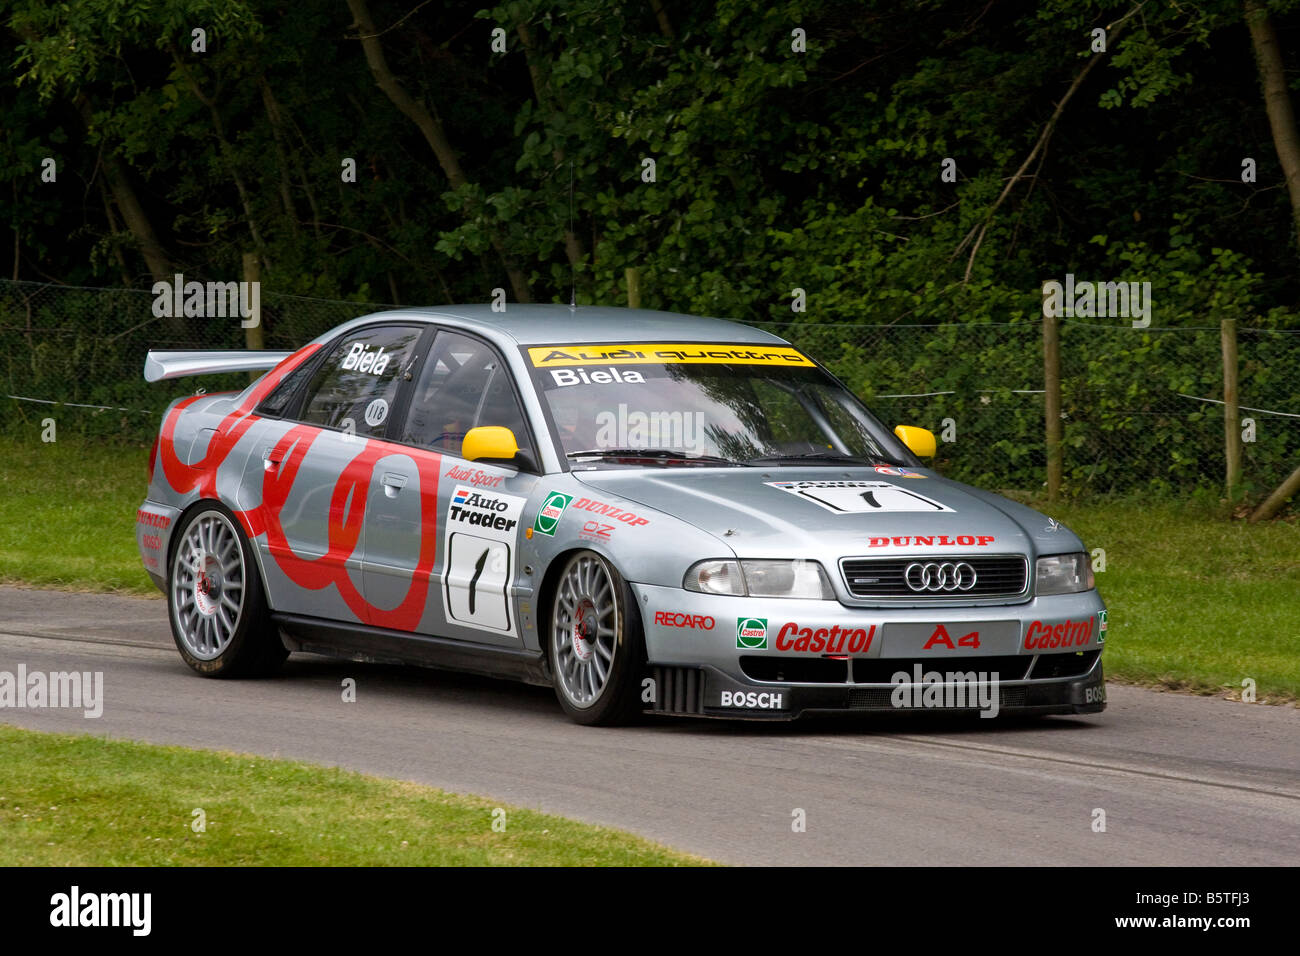 https://c8.alamy.com/comp/B5TFJ3/1996-audi-quattro-a4-btcc-contender-with-driver-frank-biela-at-goodwood-B5TFJ3.jpg